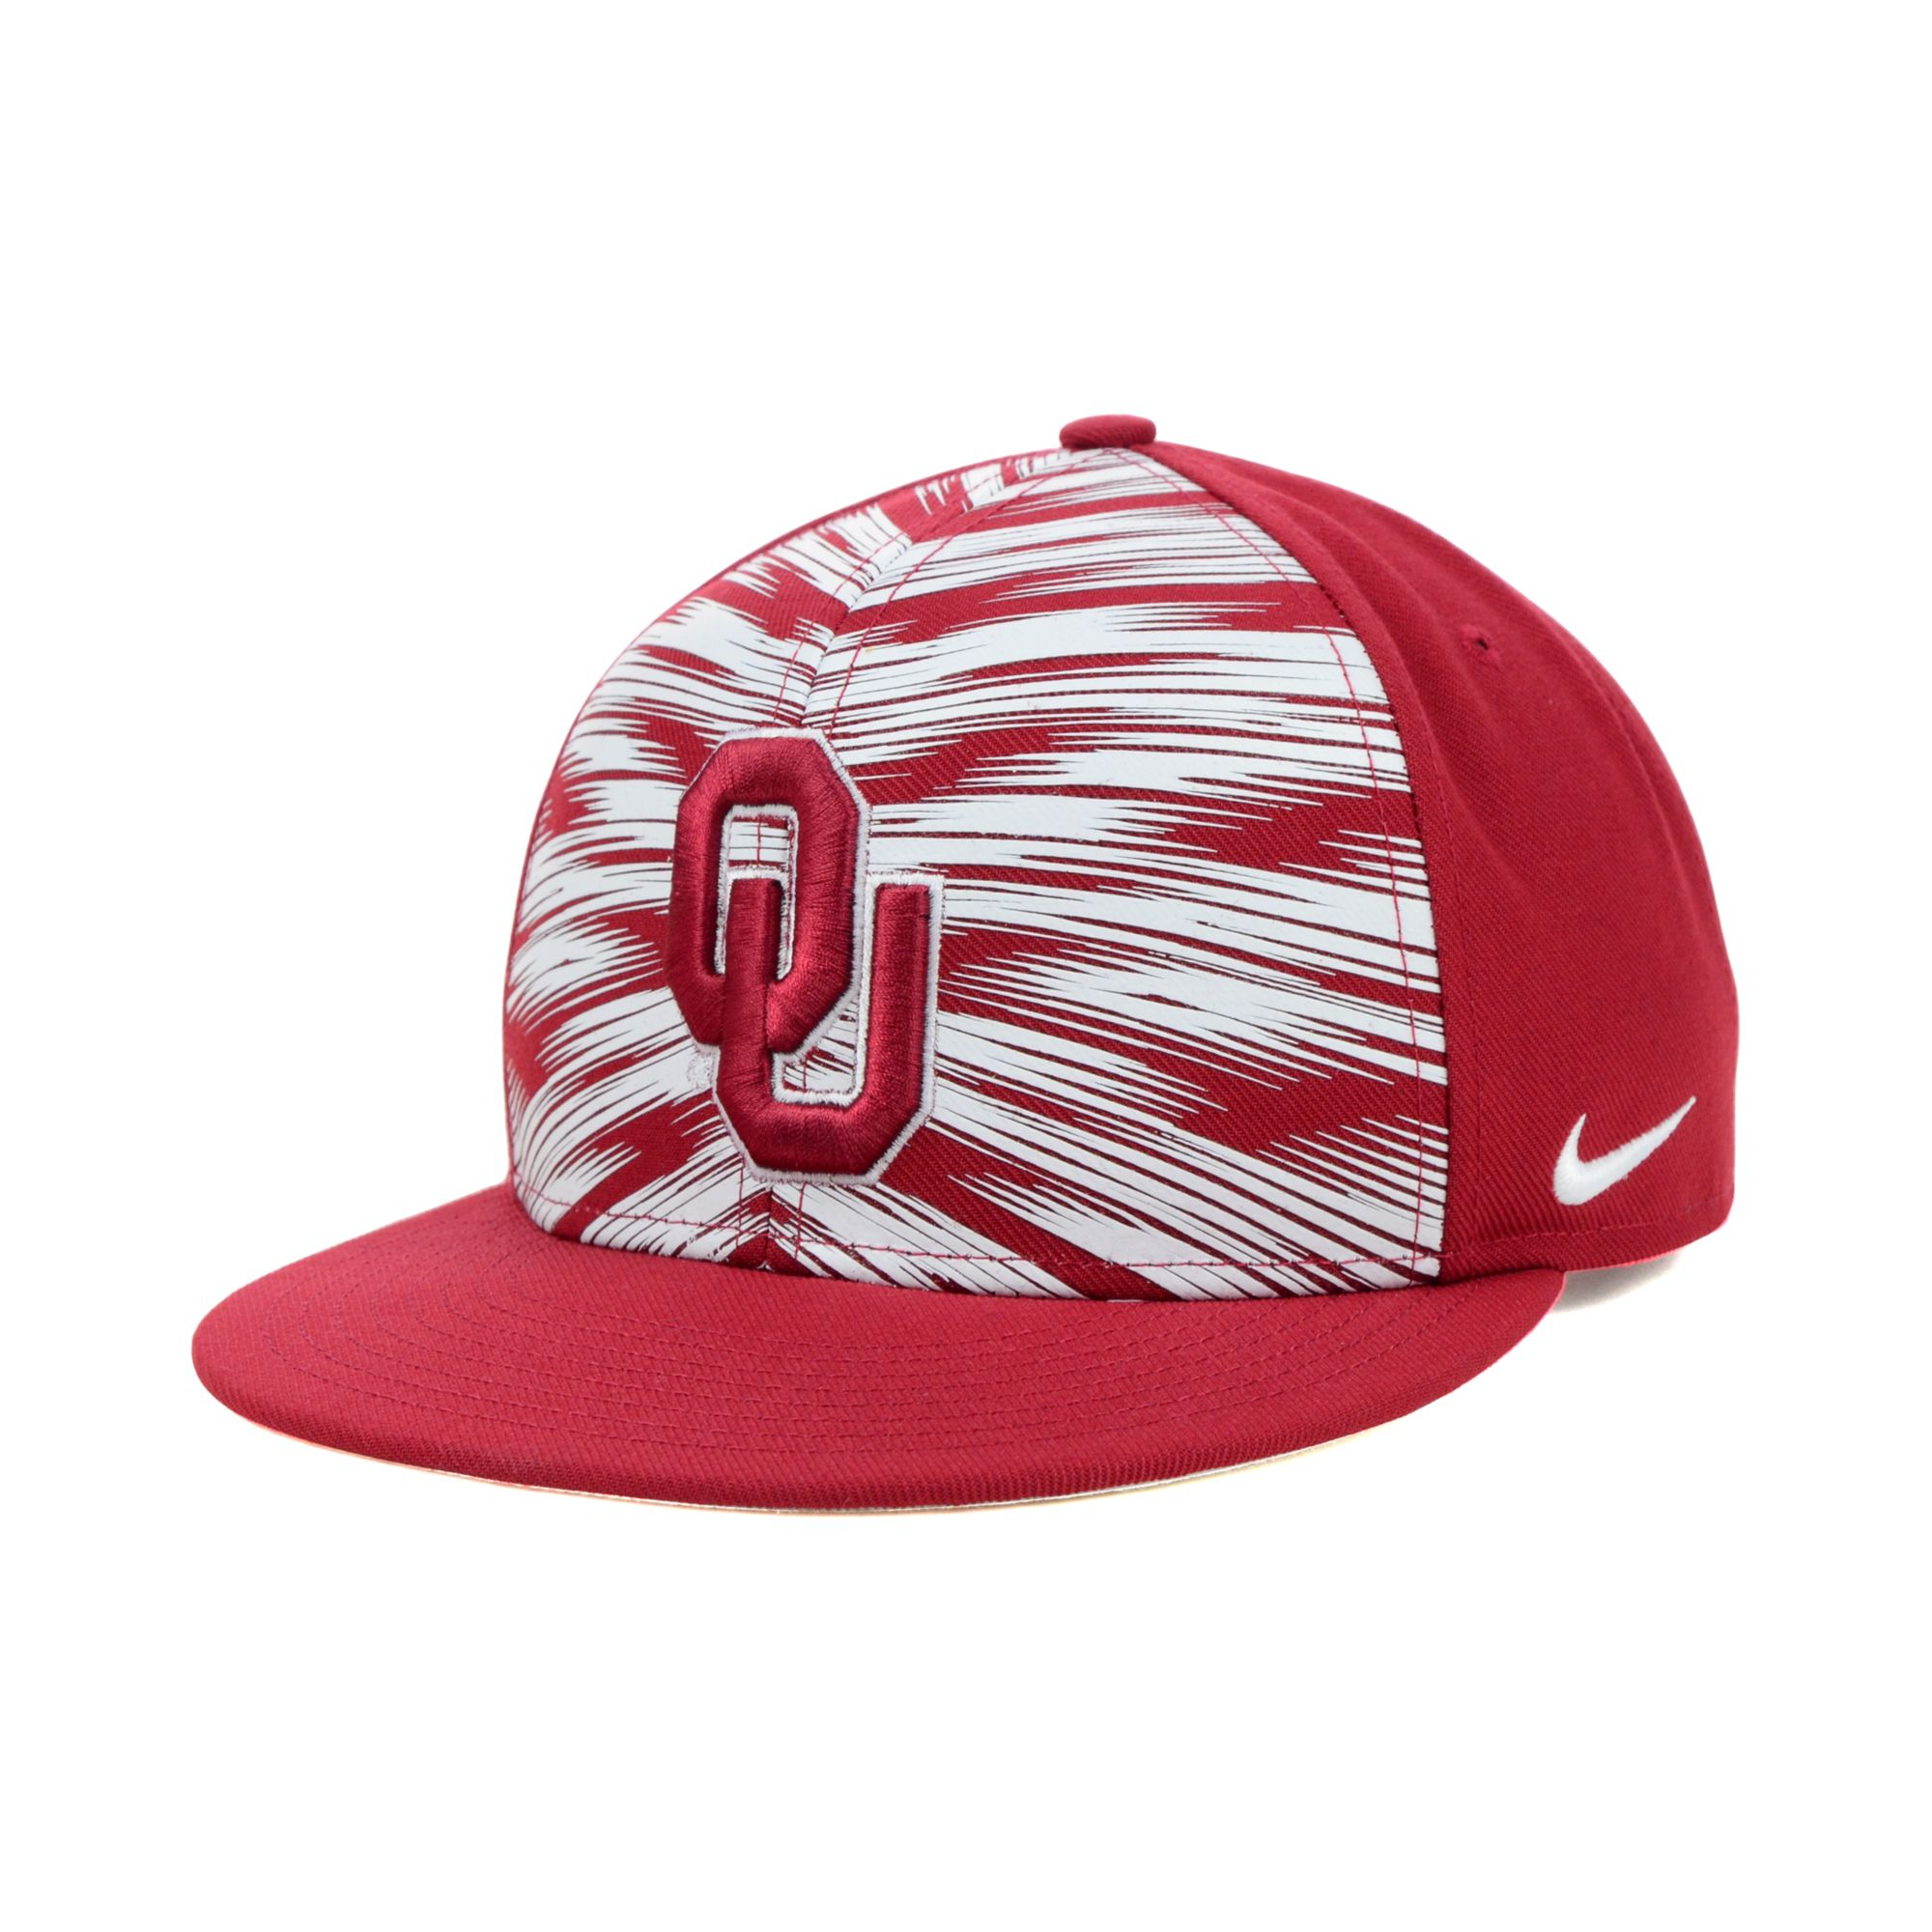 0c1aaaec0b9 ... canada lyst nike oklahoma sooners game day snapback cap in red 406ce  6d945